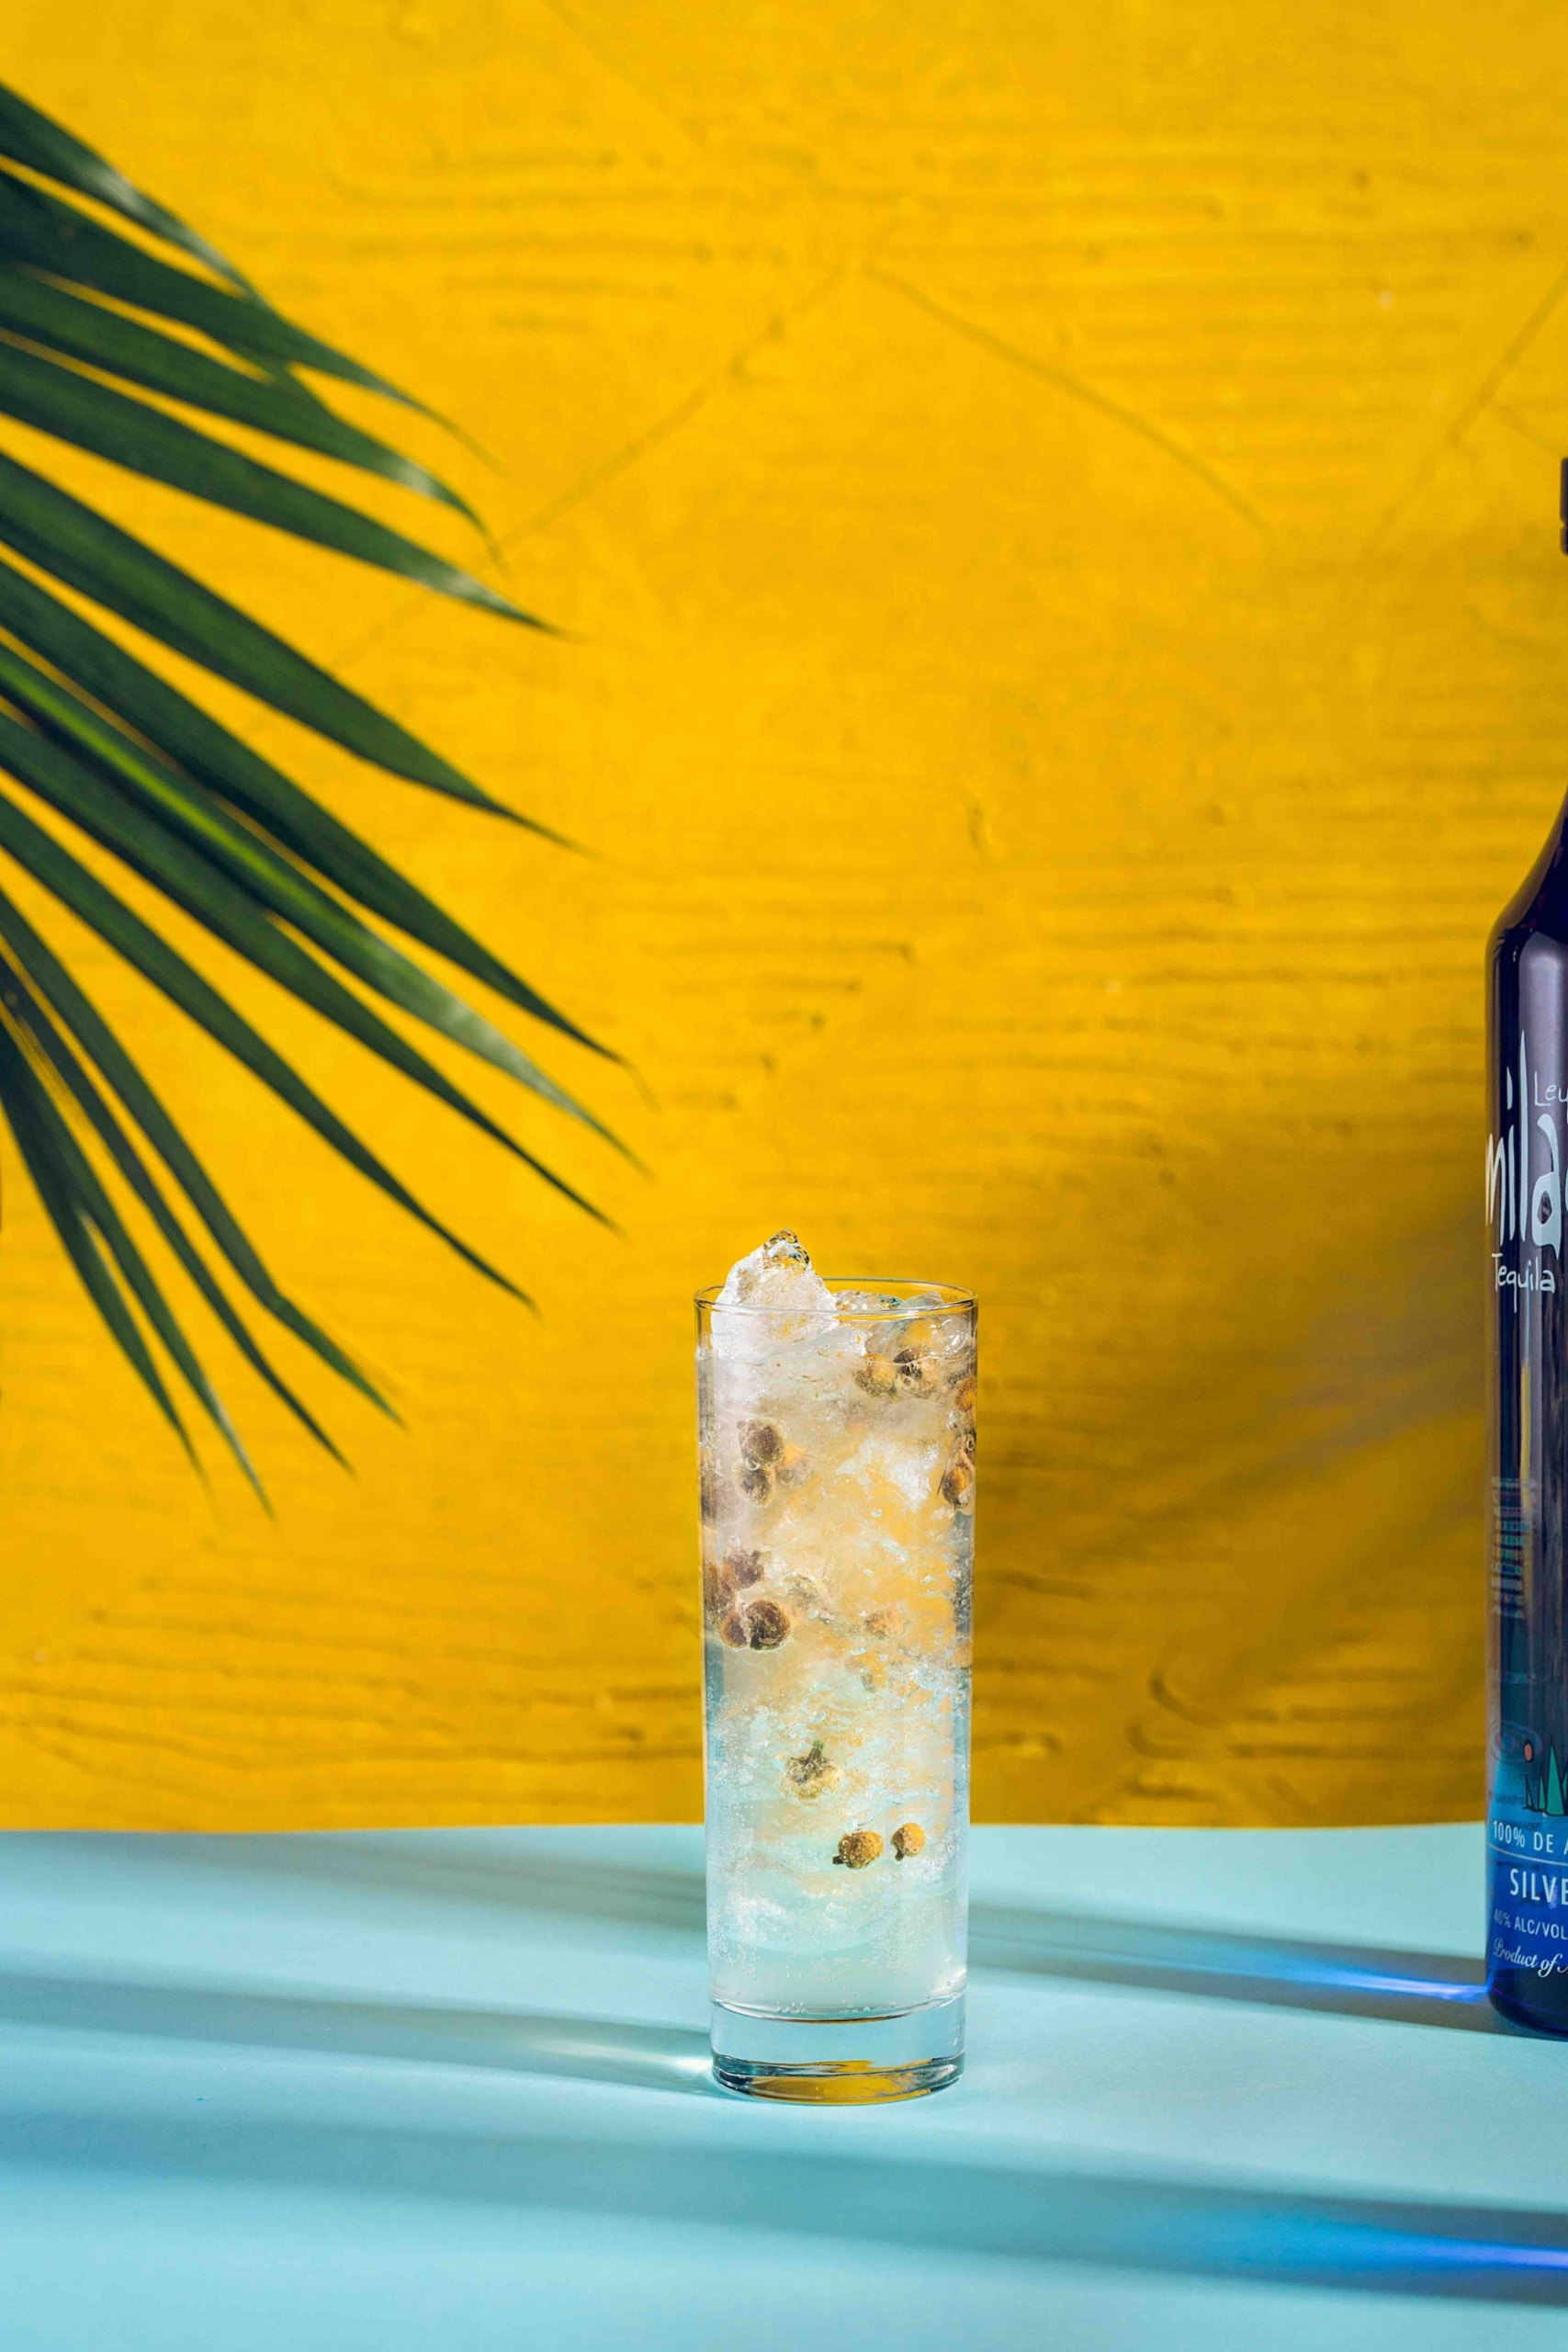 Whip Up These Father's Day Cocktail Recipes For Dear Old Dad